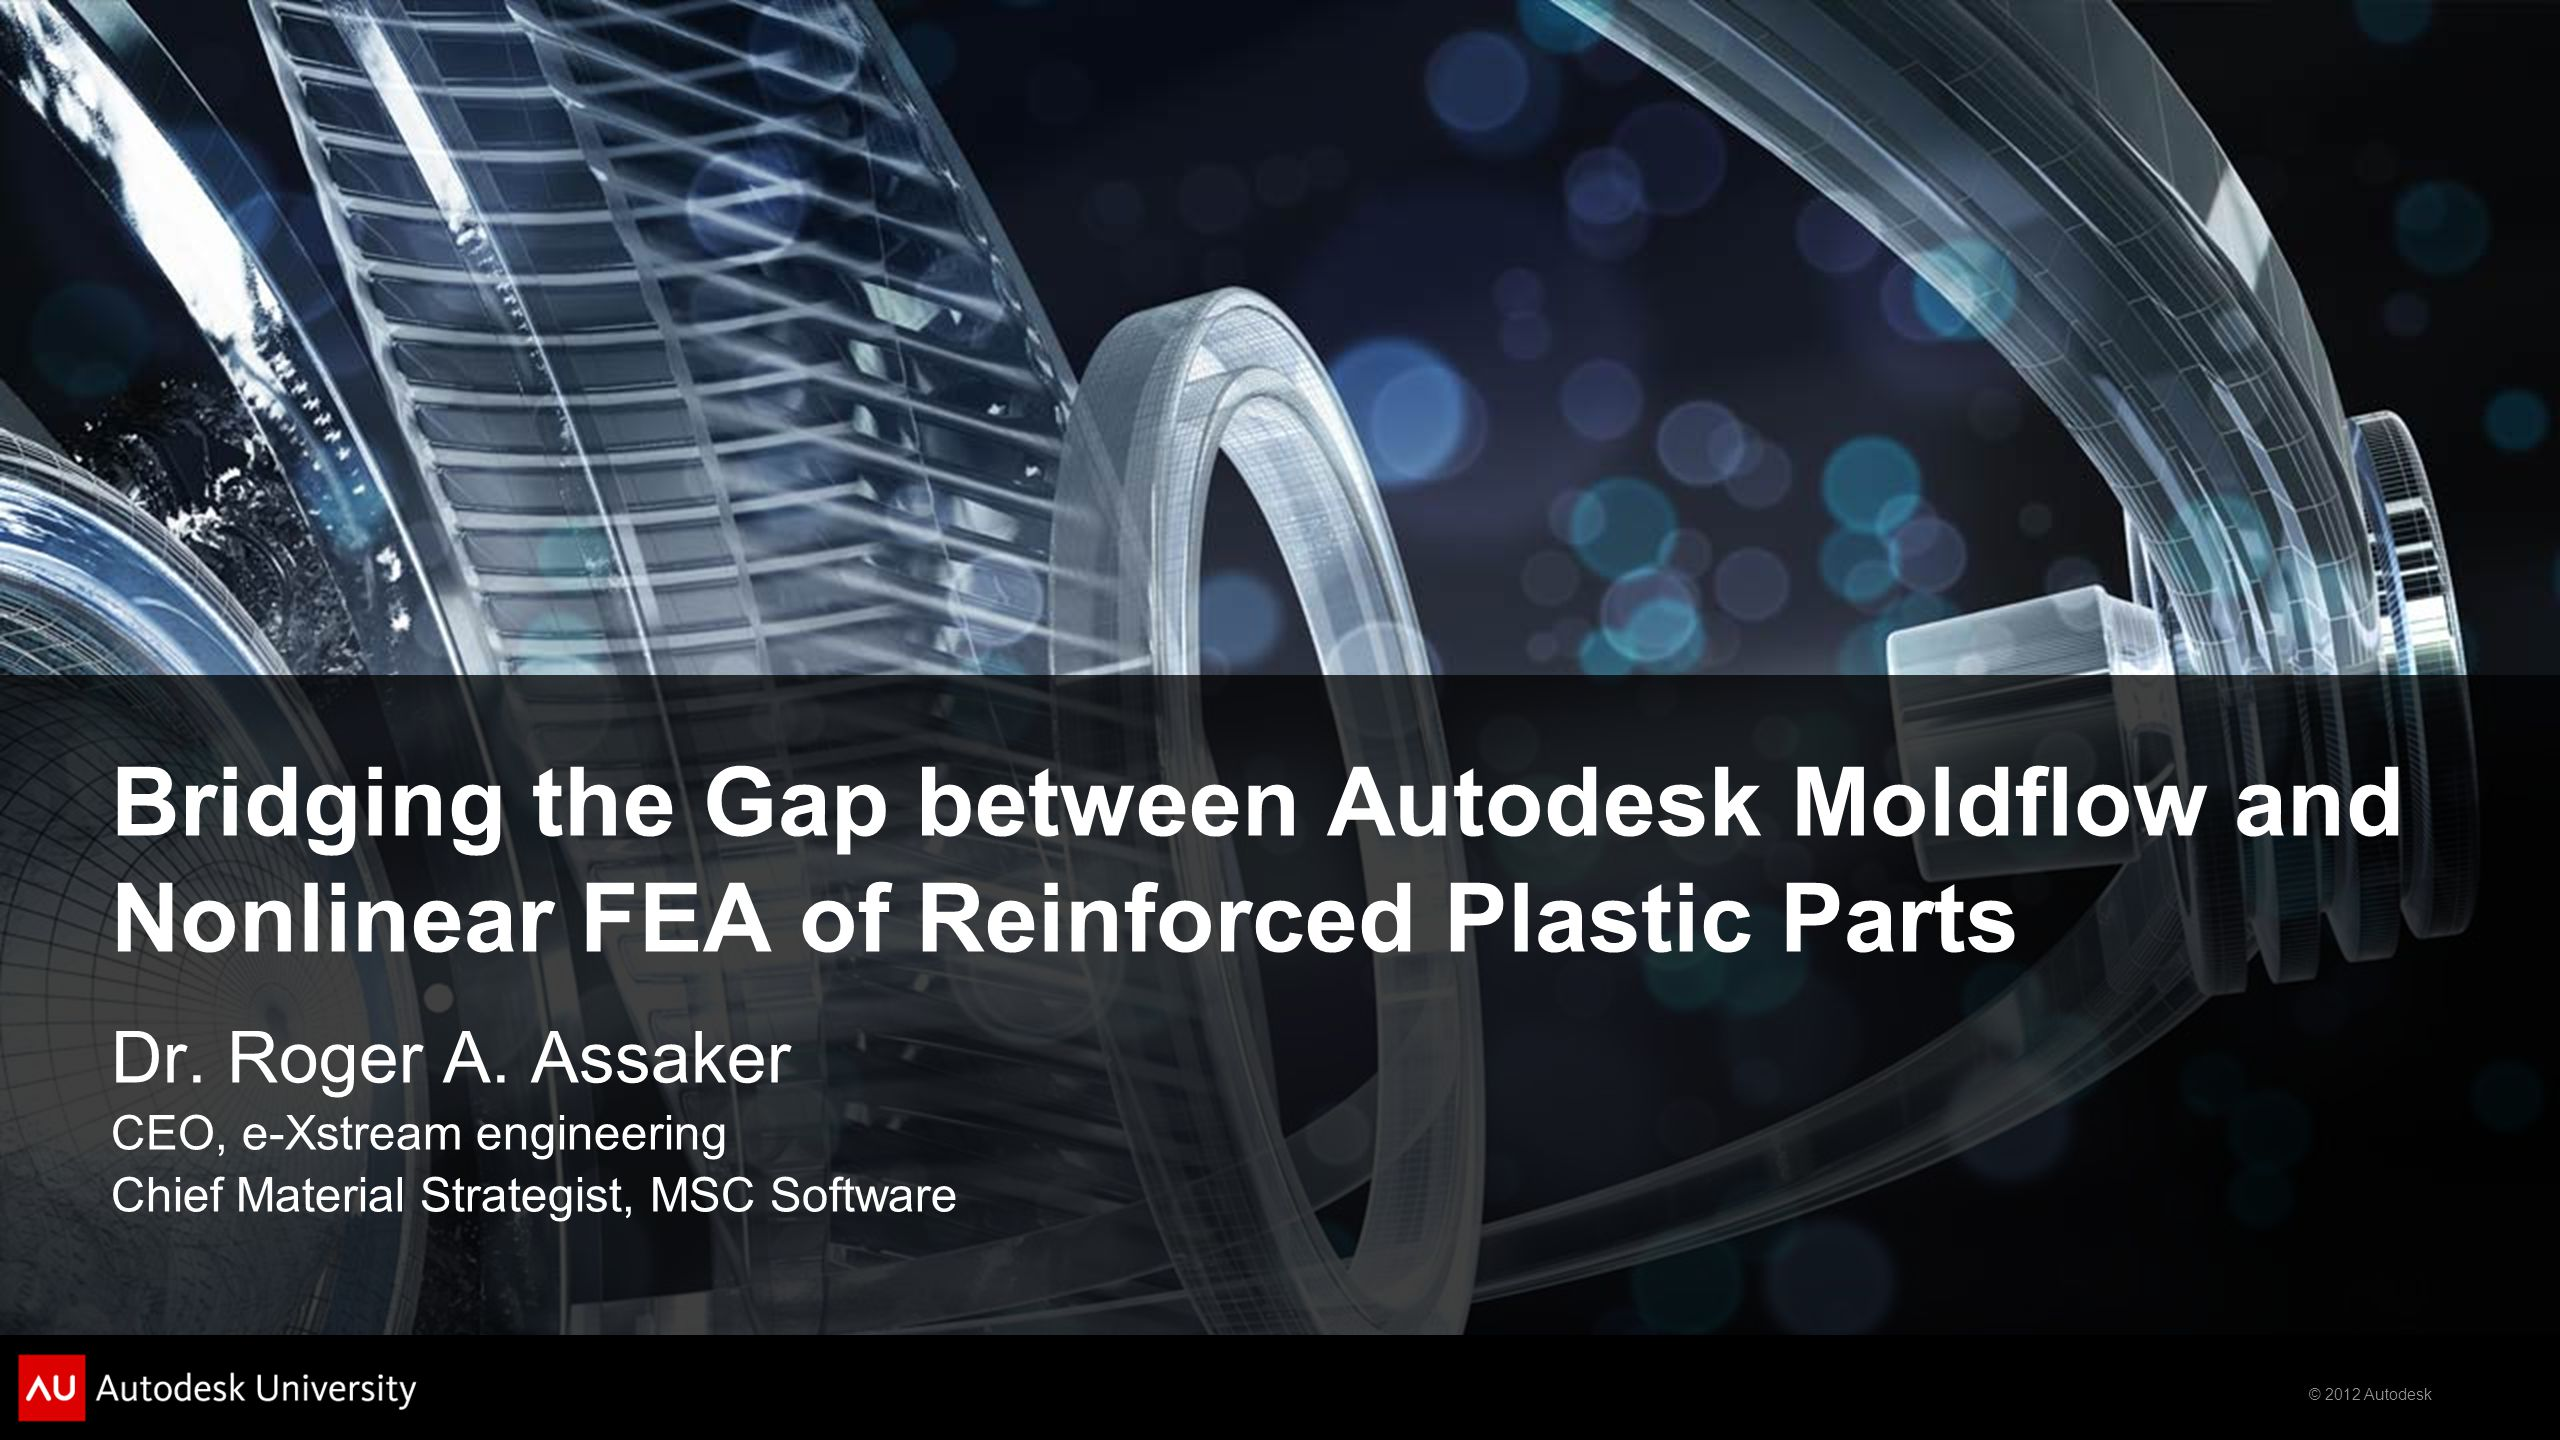 Bridging the Gap between Autodesk Moldflow and Nonlinear FEA of Reinforced Plastic Parts